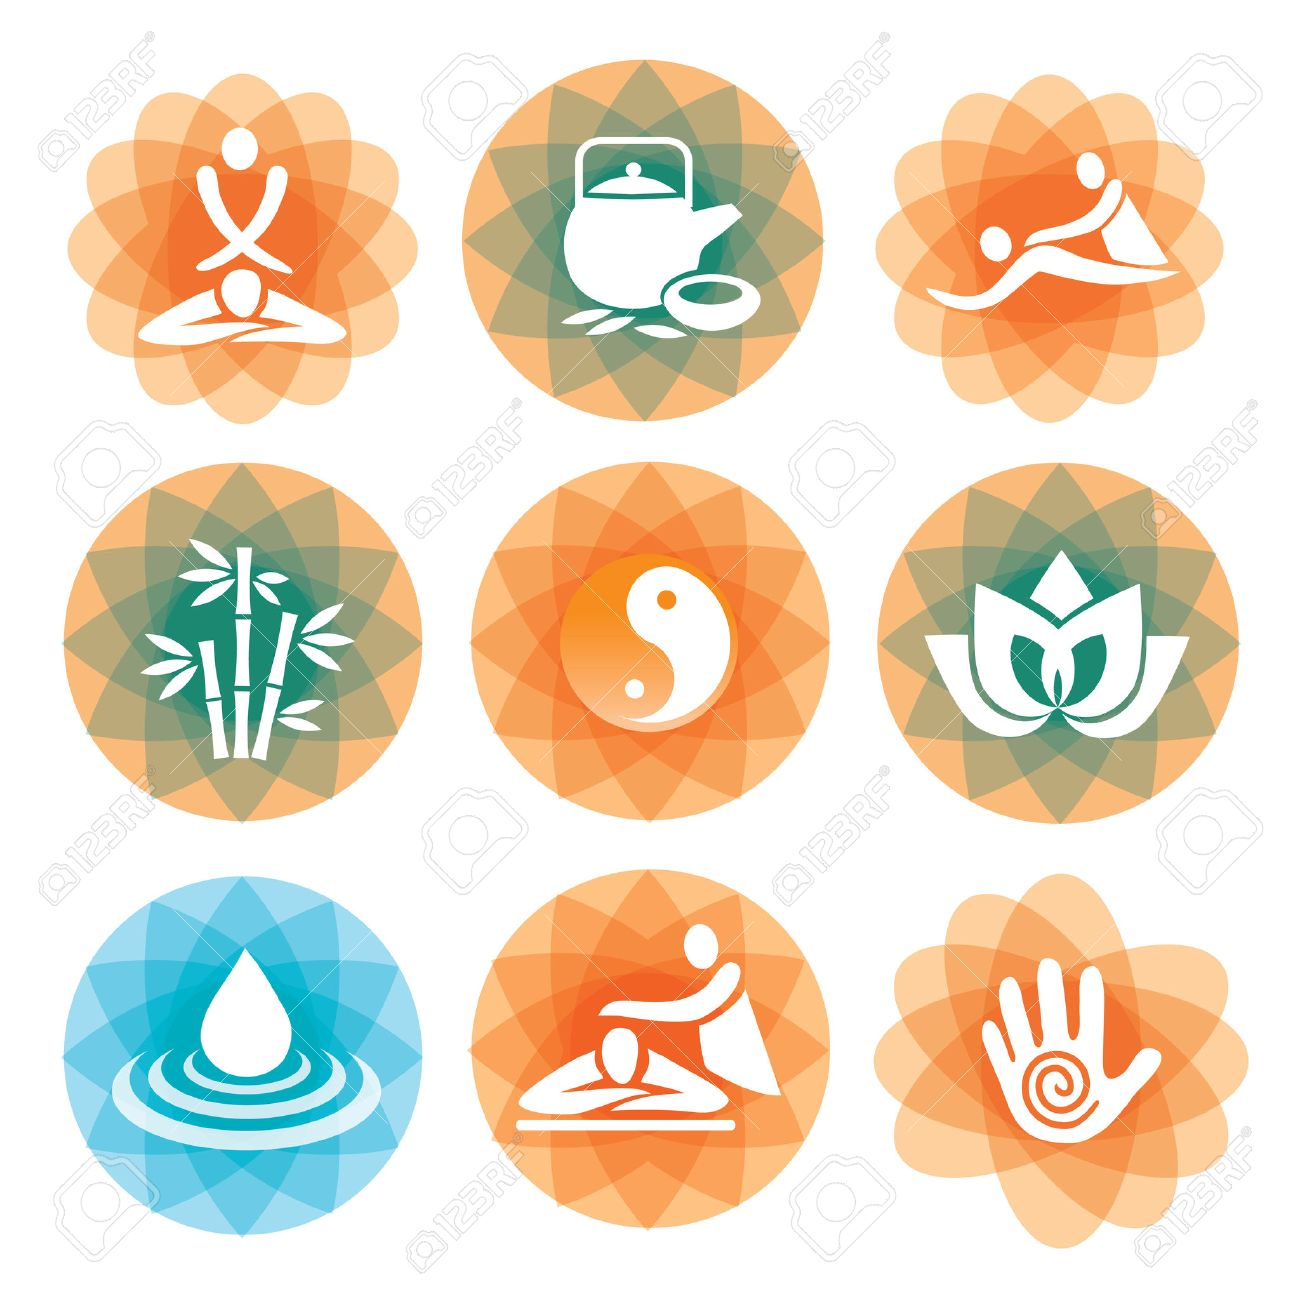 8 248 massage therapy stock illustrations cliparts and royalty massage therapy set of massage yoga and spa icons on the colorful abstract background